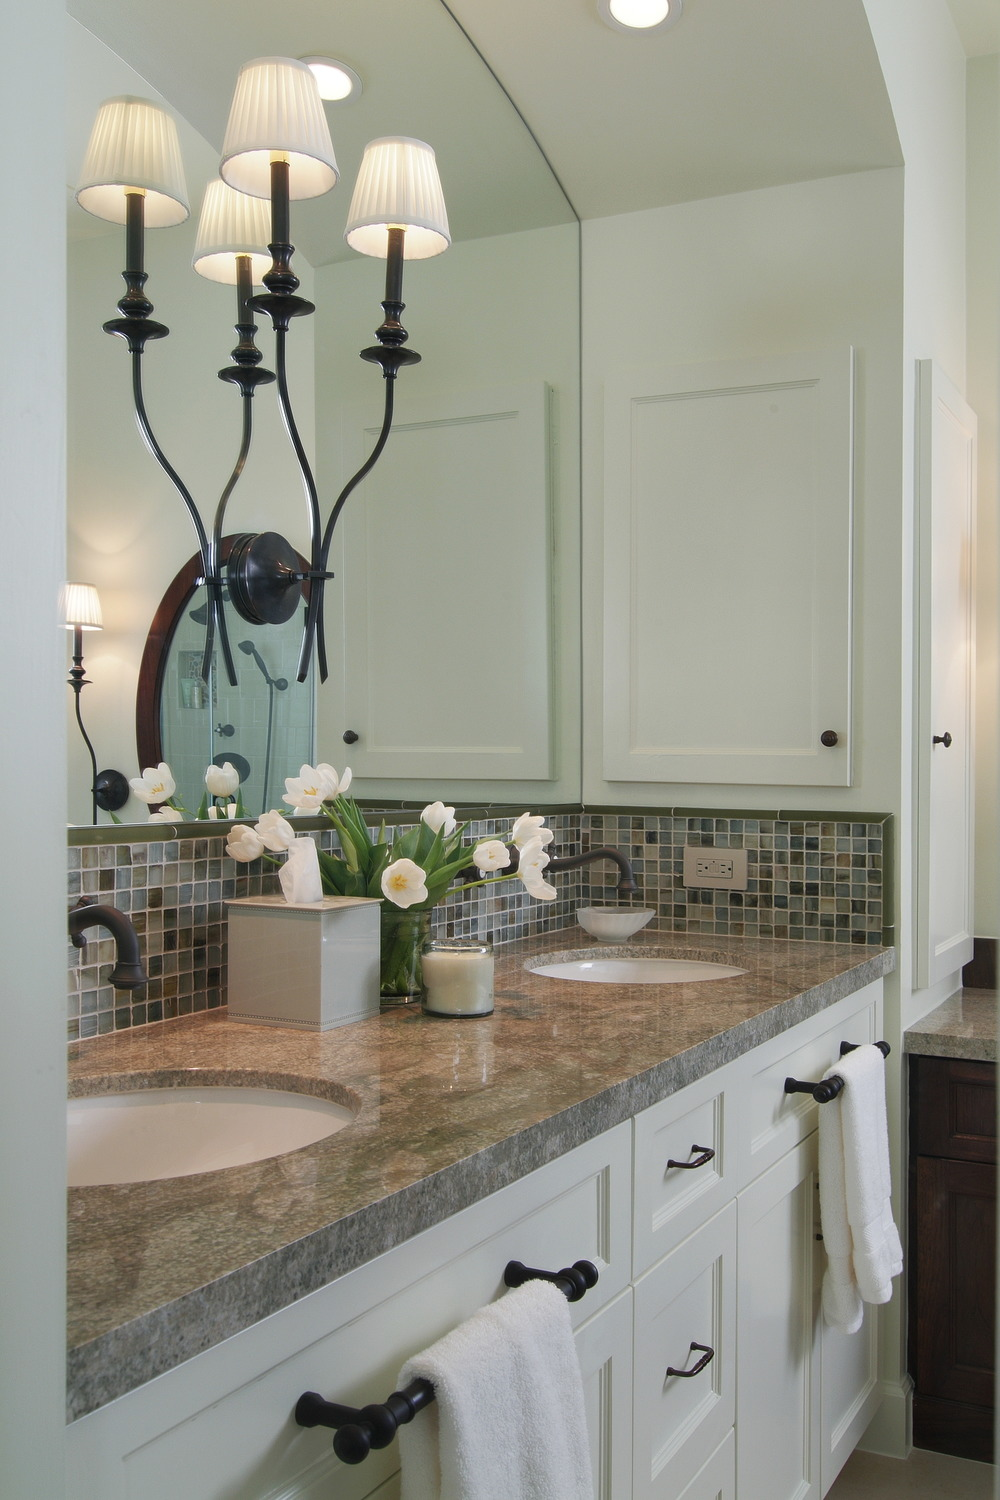 No Space Around The Sink For A Towel Bar? Here\'s Your Solution ...